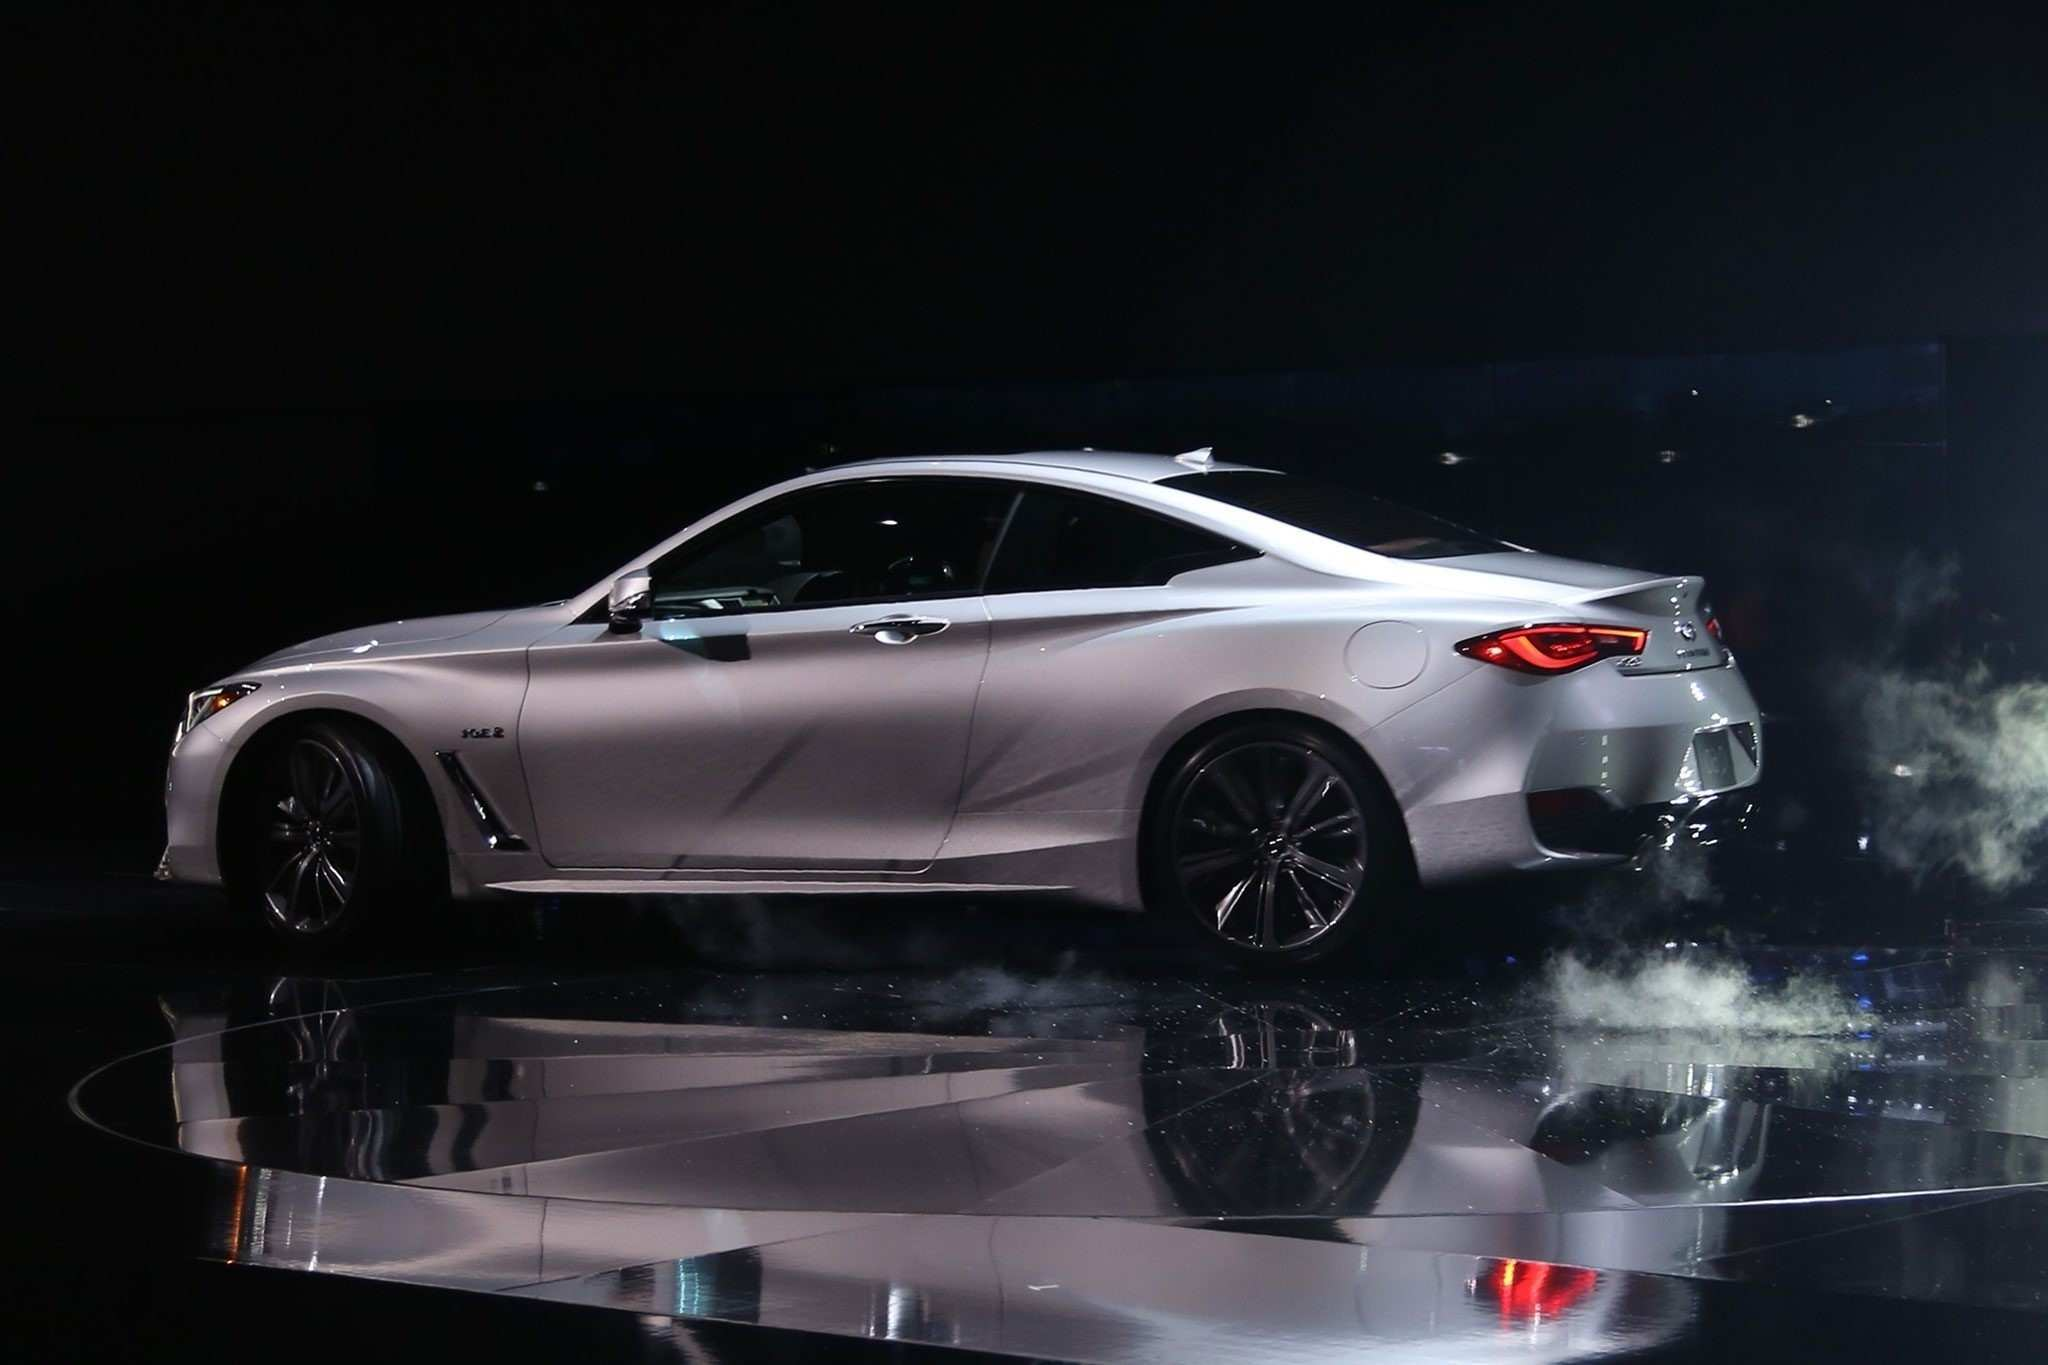 54 The 2020 Infiniti Q60 Coupe Ipl Rumors